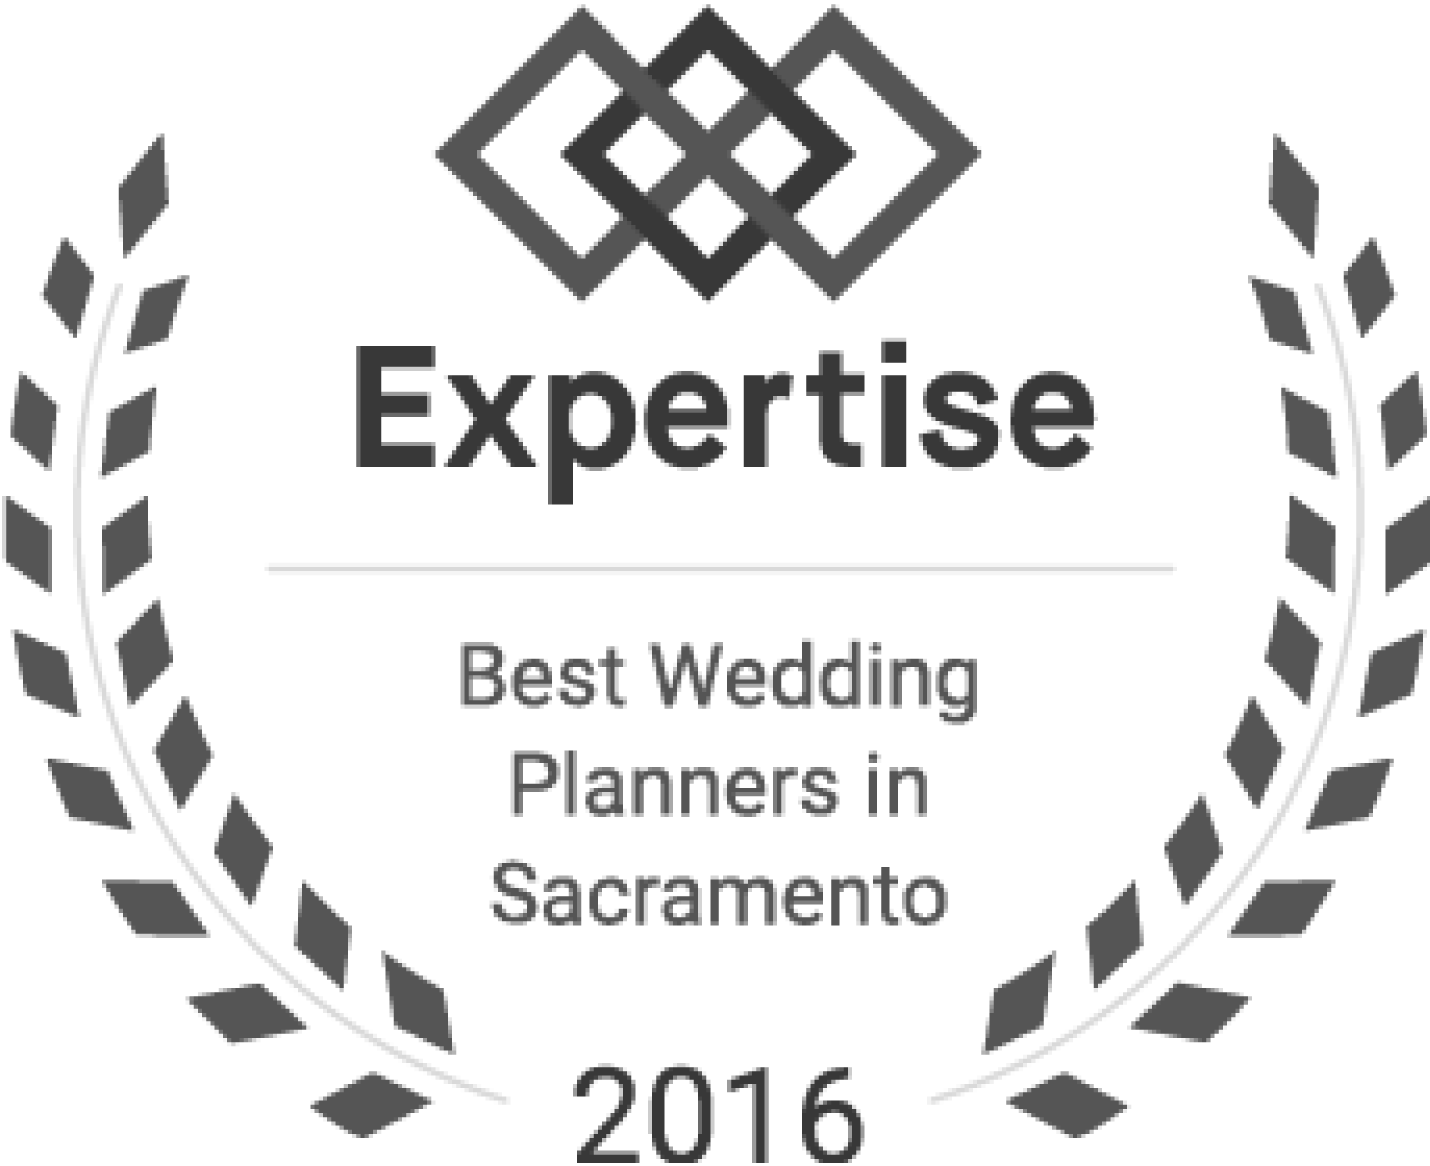 Best Wedding Planners in Sacramento